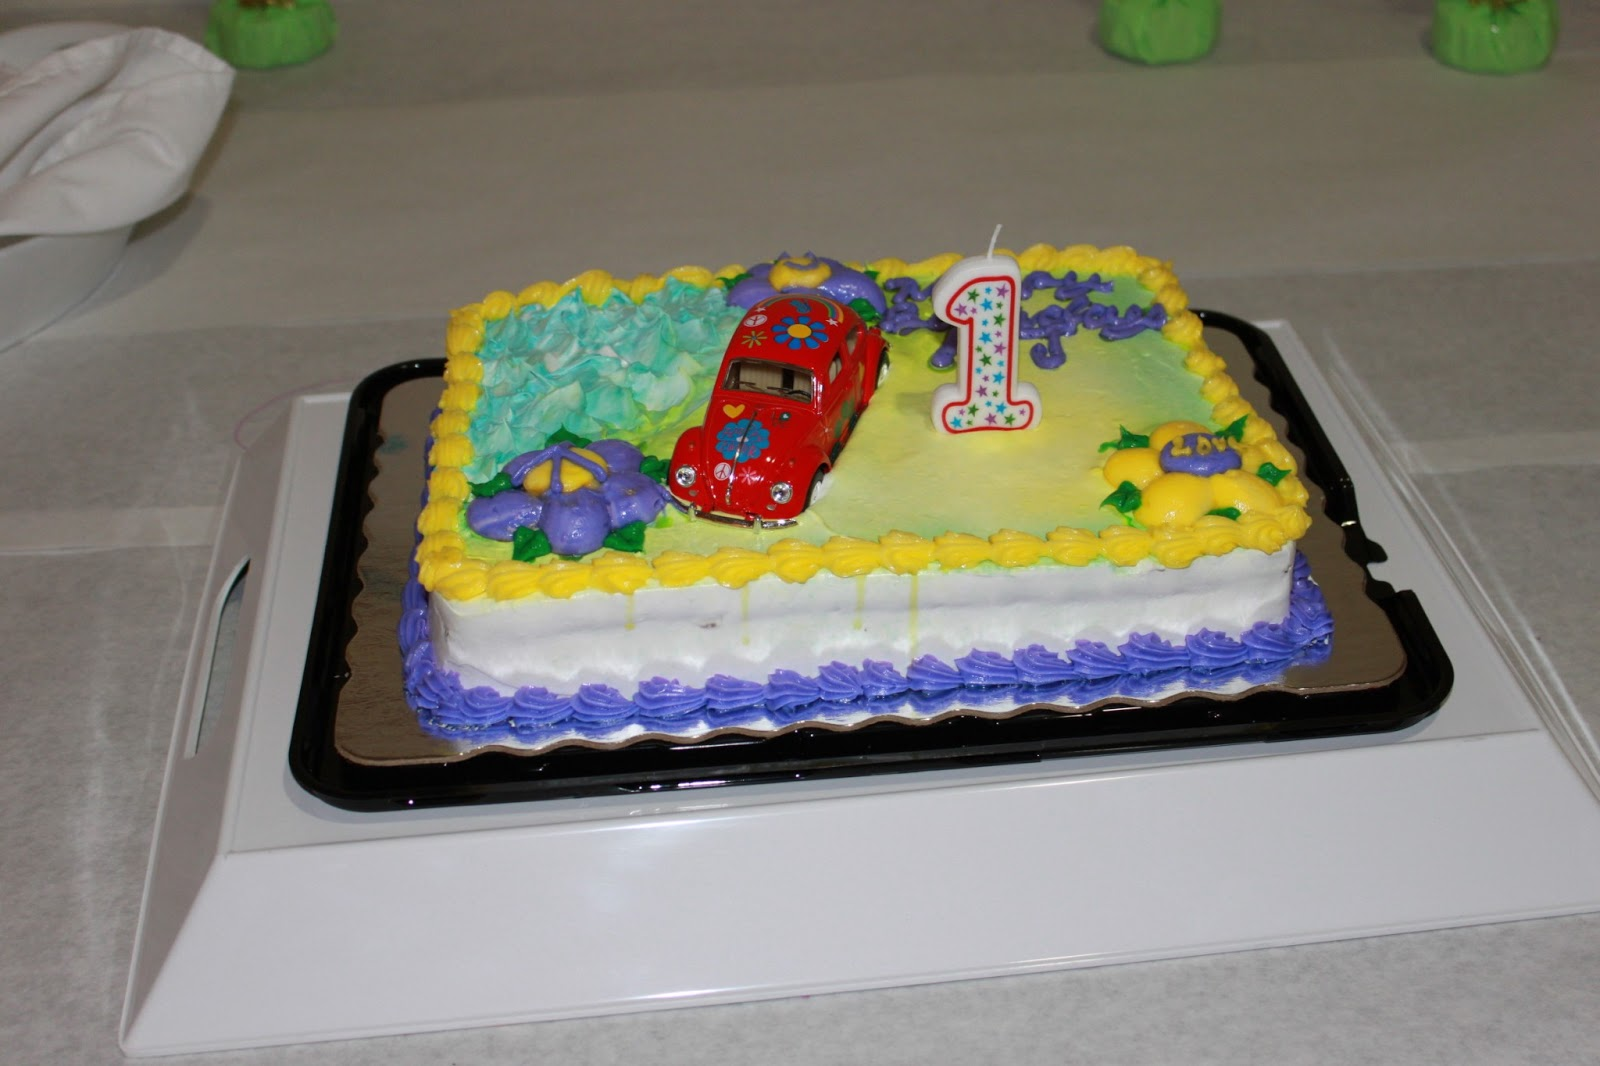 11 Food Lion Cakes Photo Food Lion Birthday Cakes Food Lion